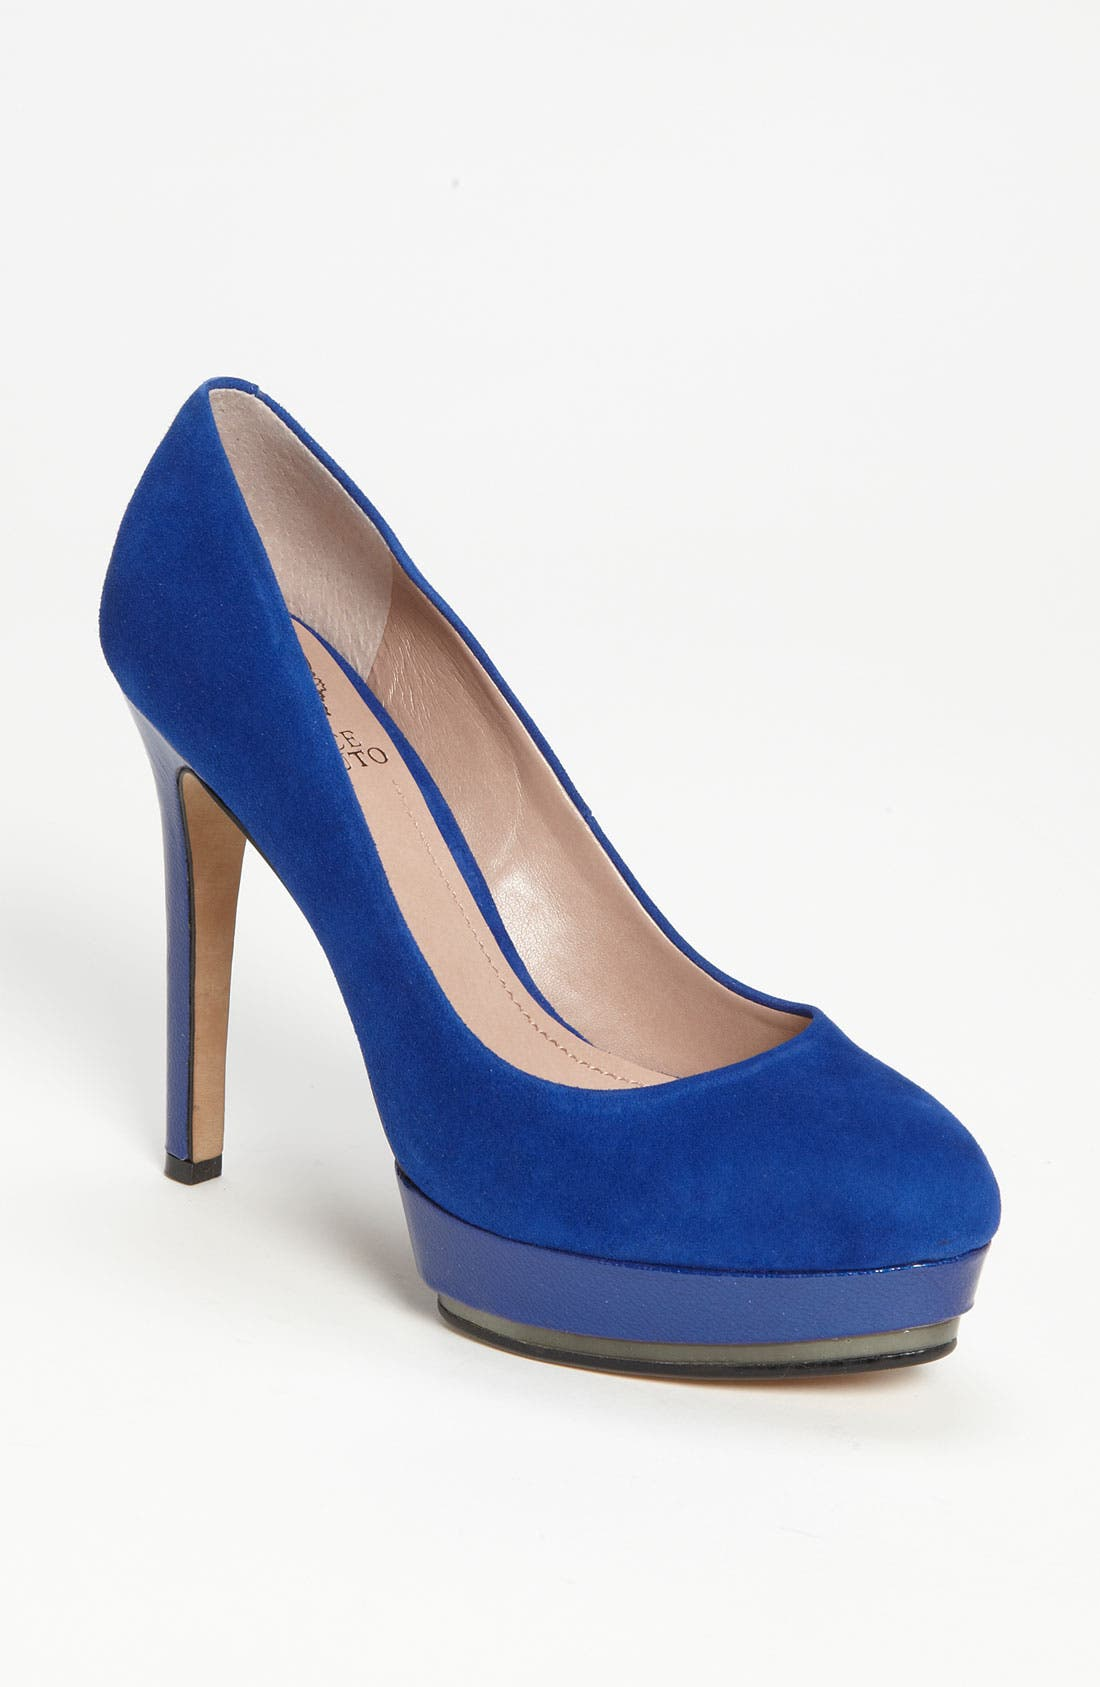 Alternate Image 1 Selected - Vince Camuto 'Dacoma' Pump (Nordstrom Exclusive)